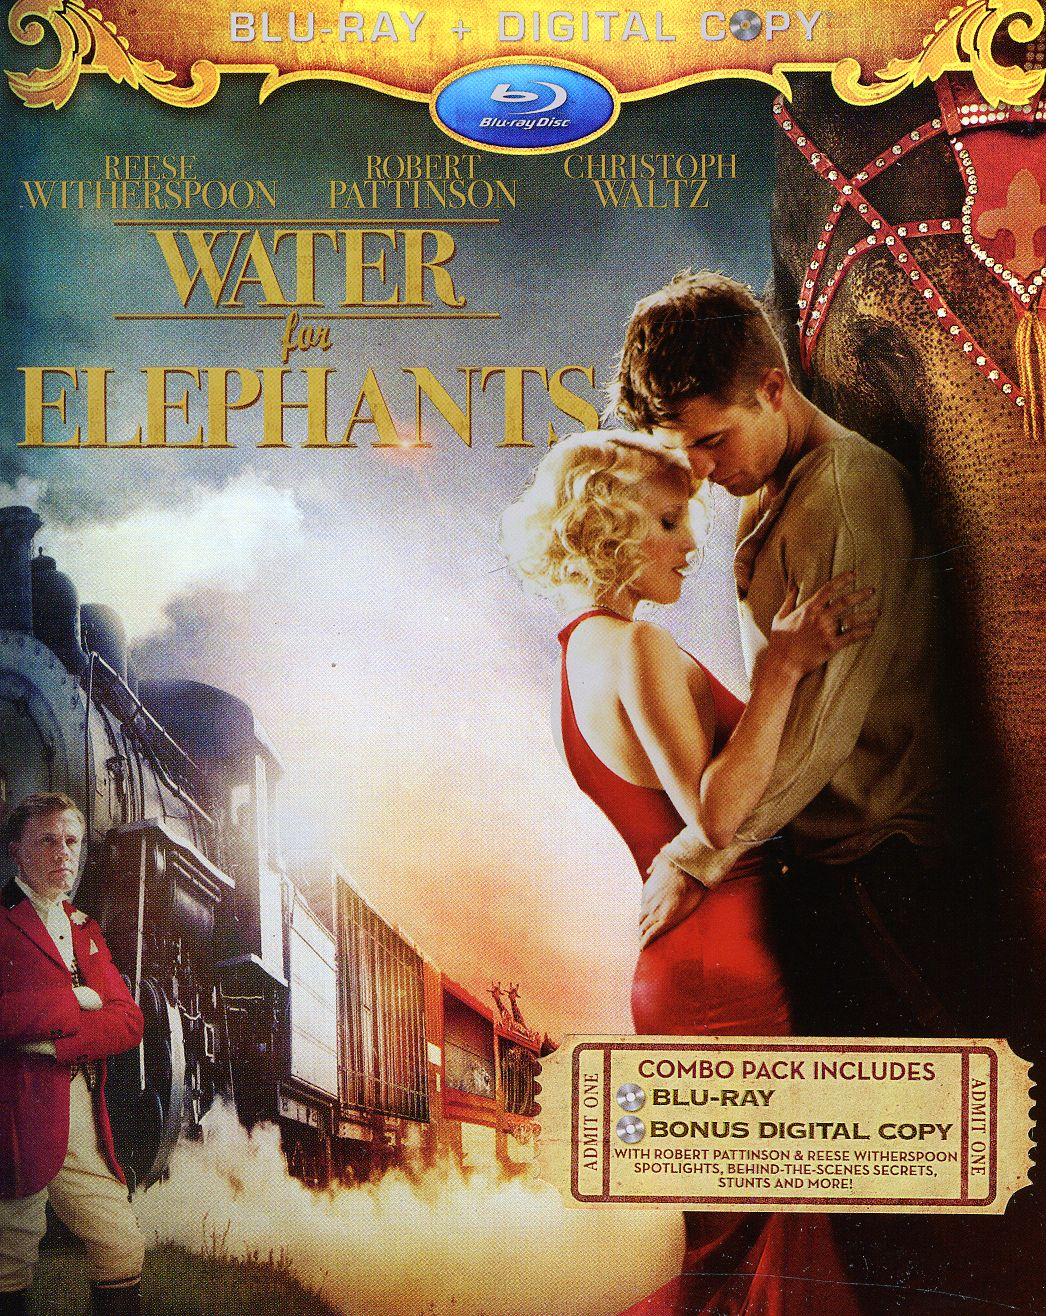 Water For Elephants (Blu-ray Disc)